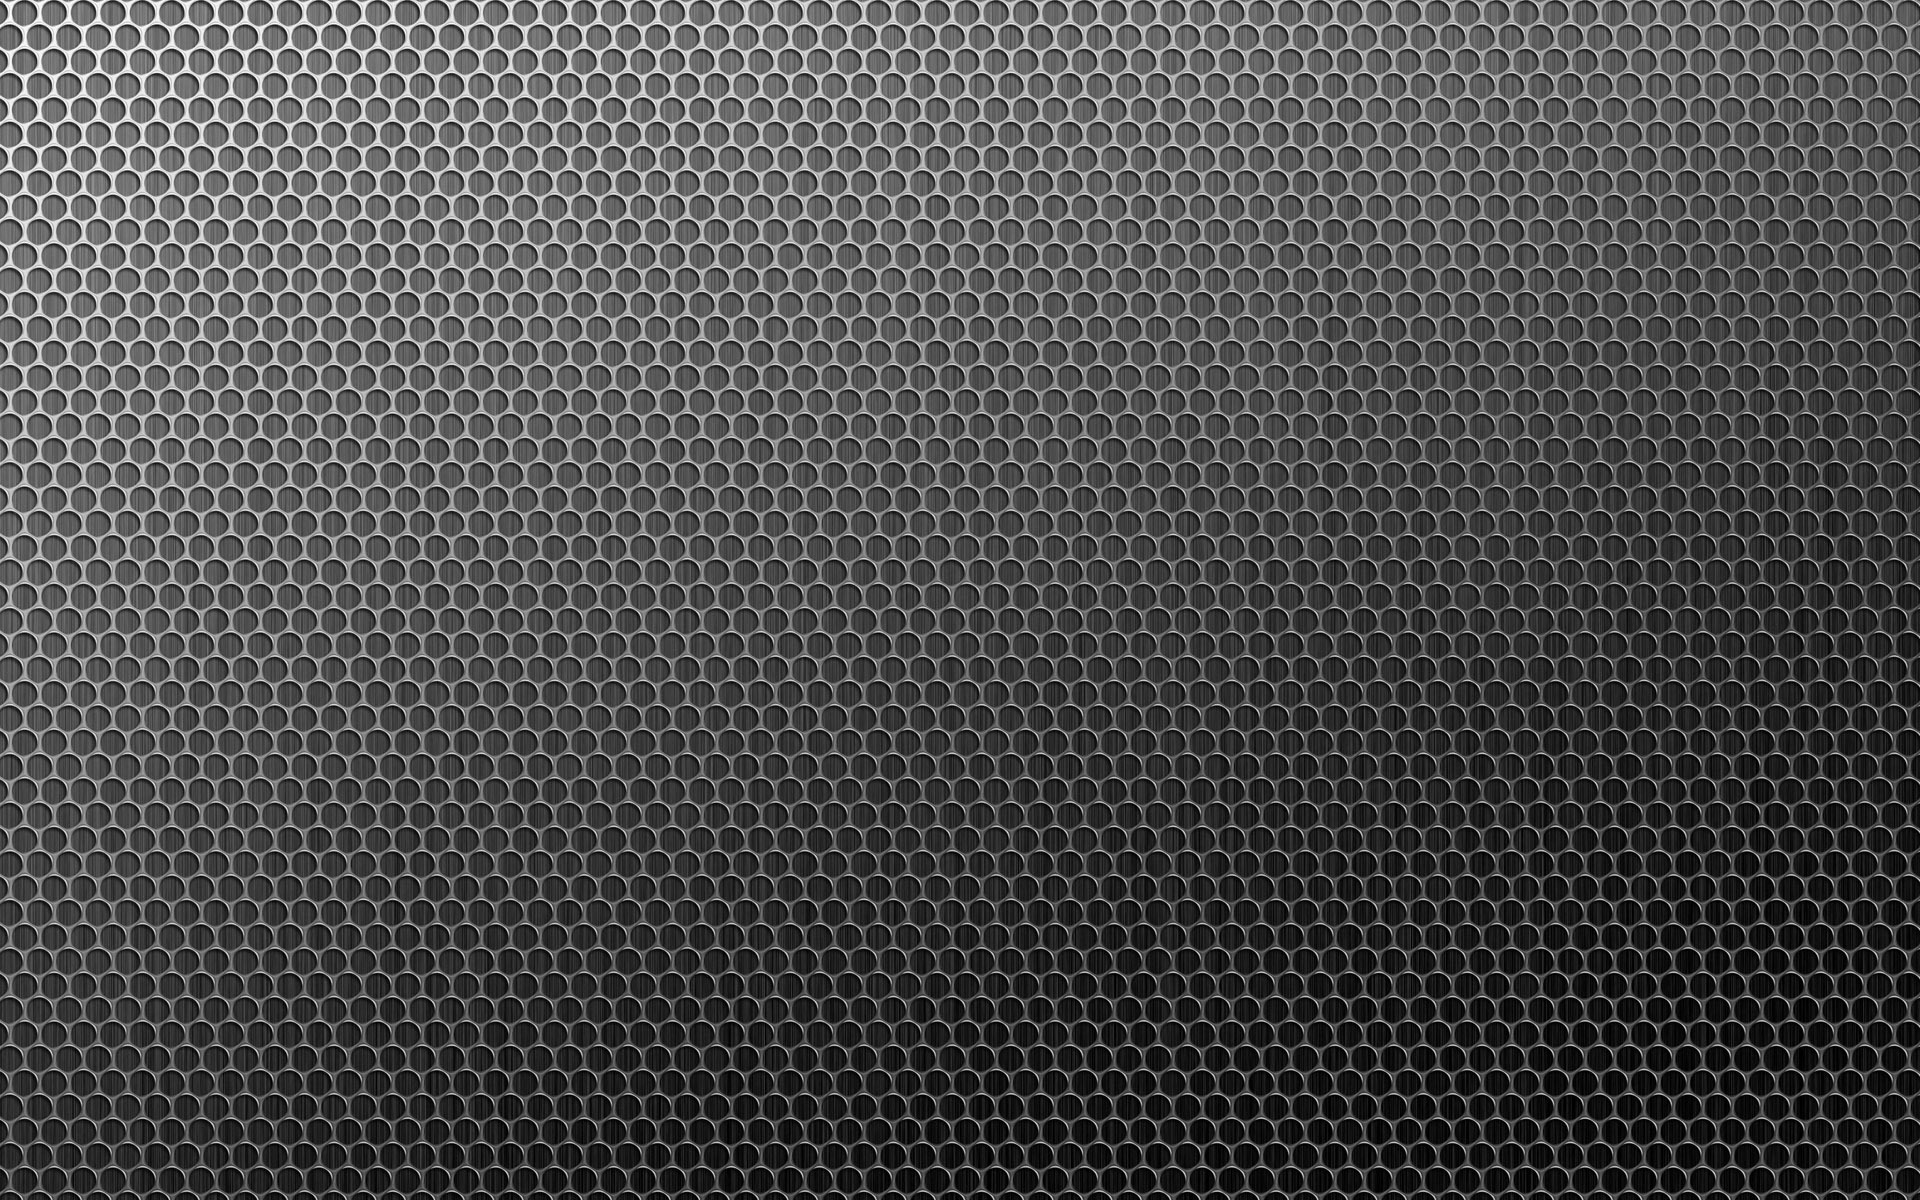 Metallic Circles Pattern Wallpaper 1920x1200px